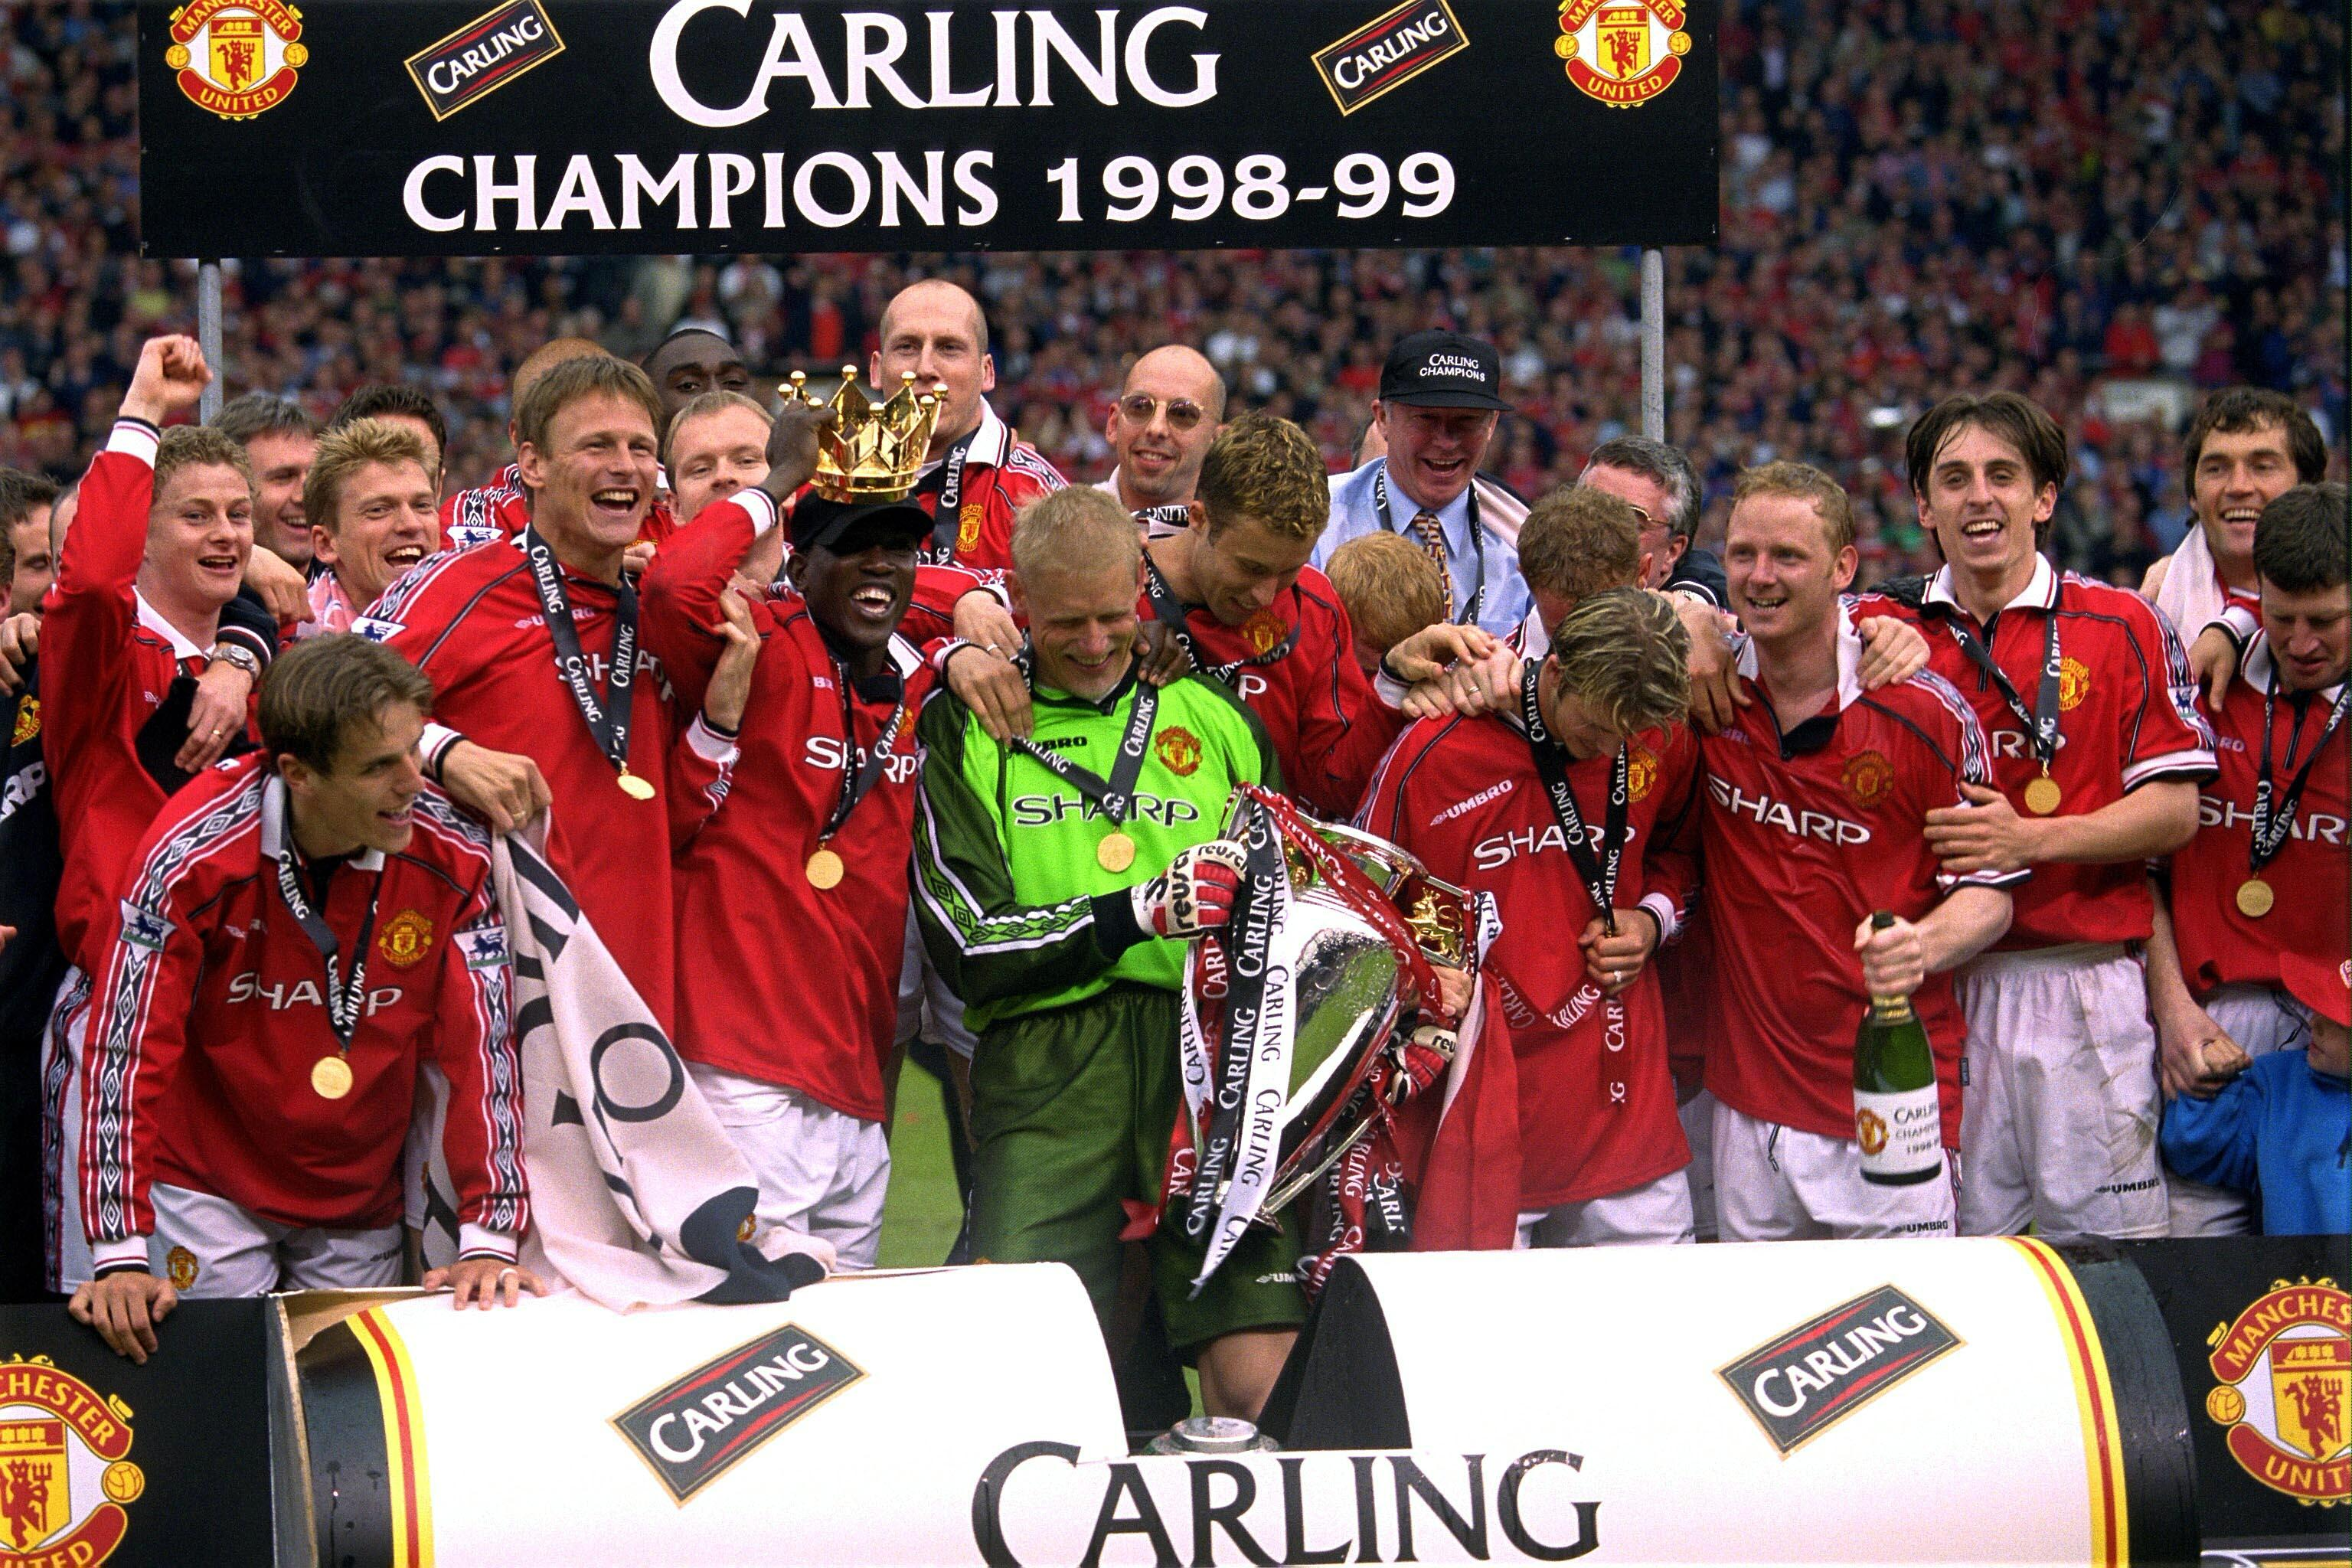 Updates from the uefa champions league final between manchester city and chelsea. 1998/99 Season Review: Man Utd seal the treble